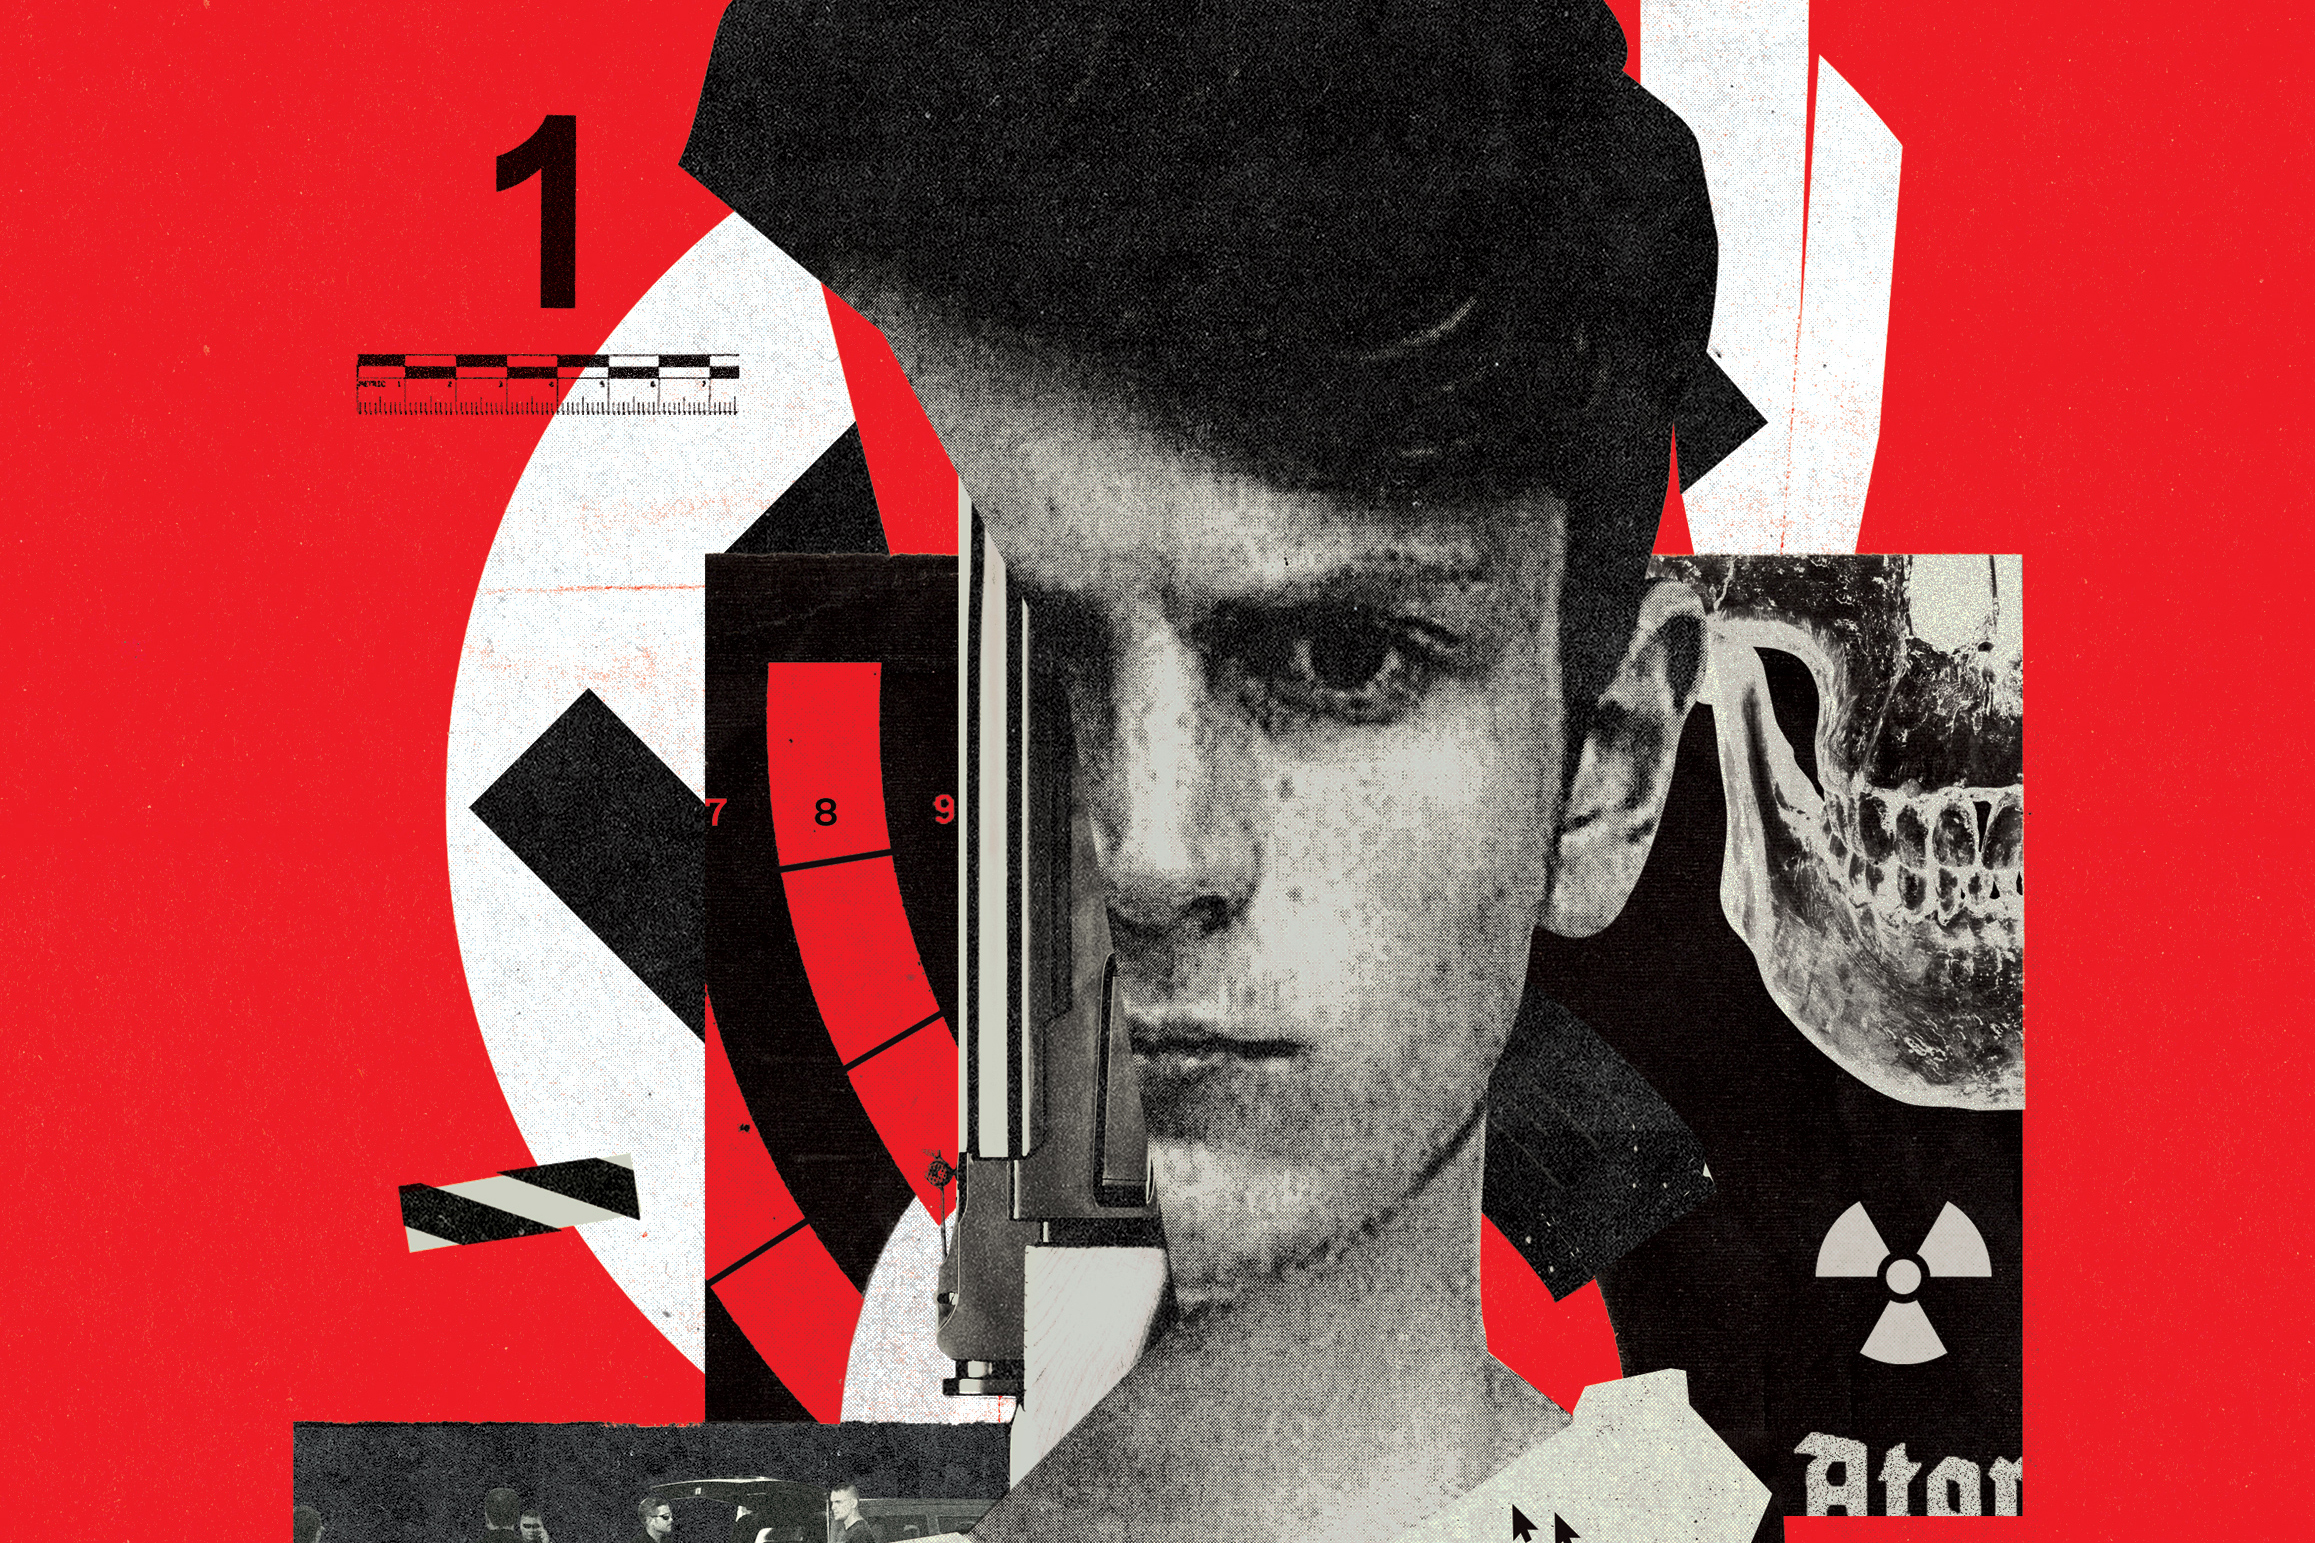 All-American Nazis: Inside the Rise of Fascist Youth in the U.S.